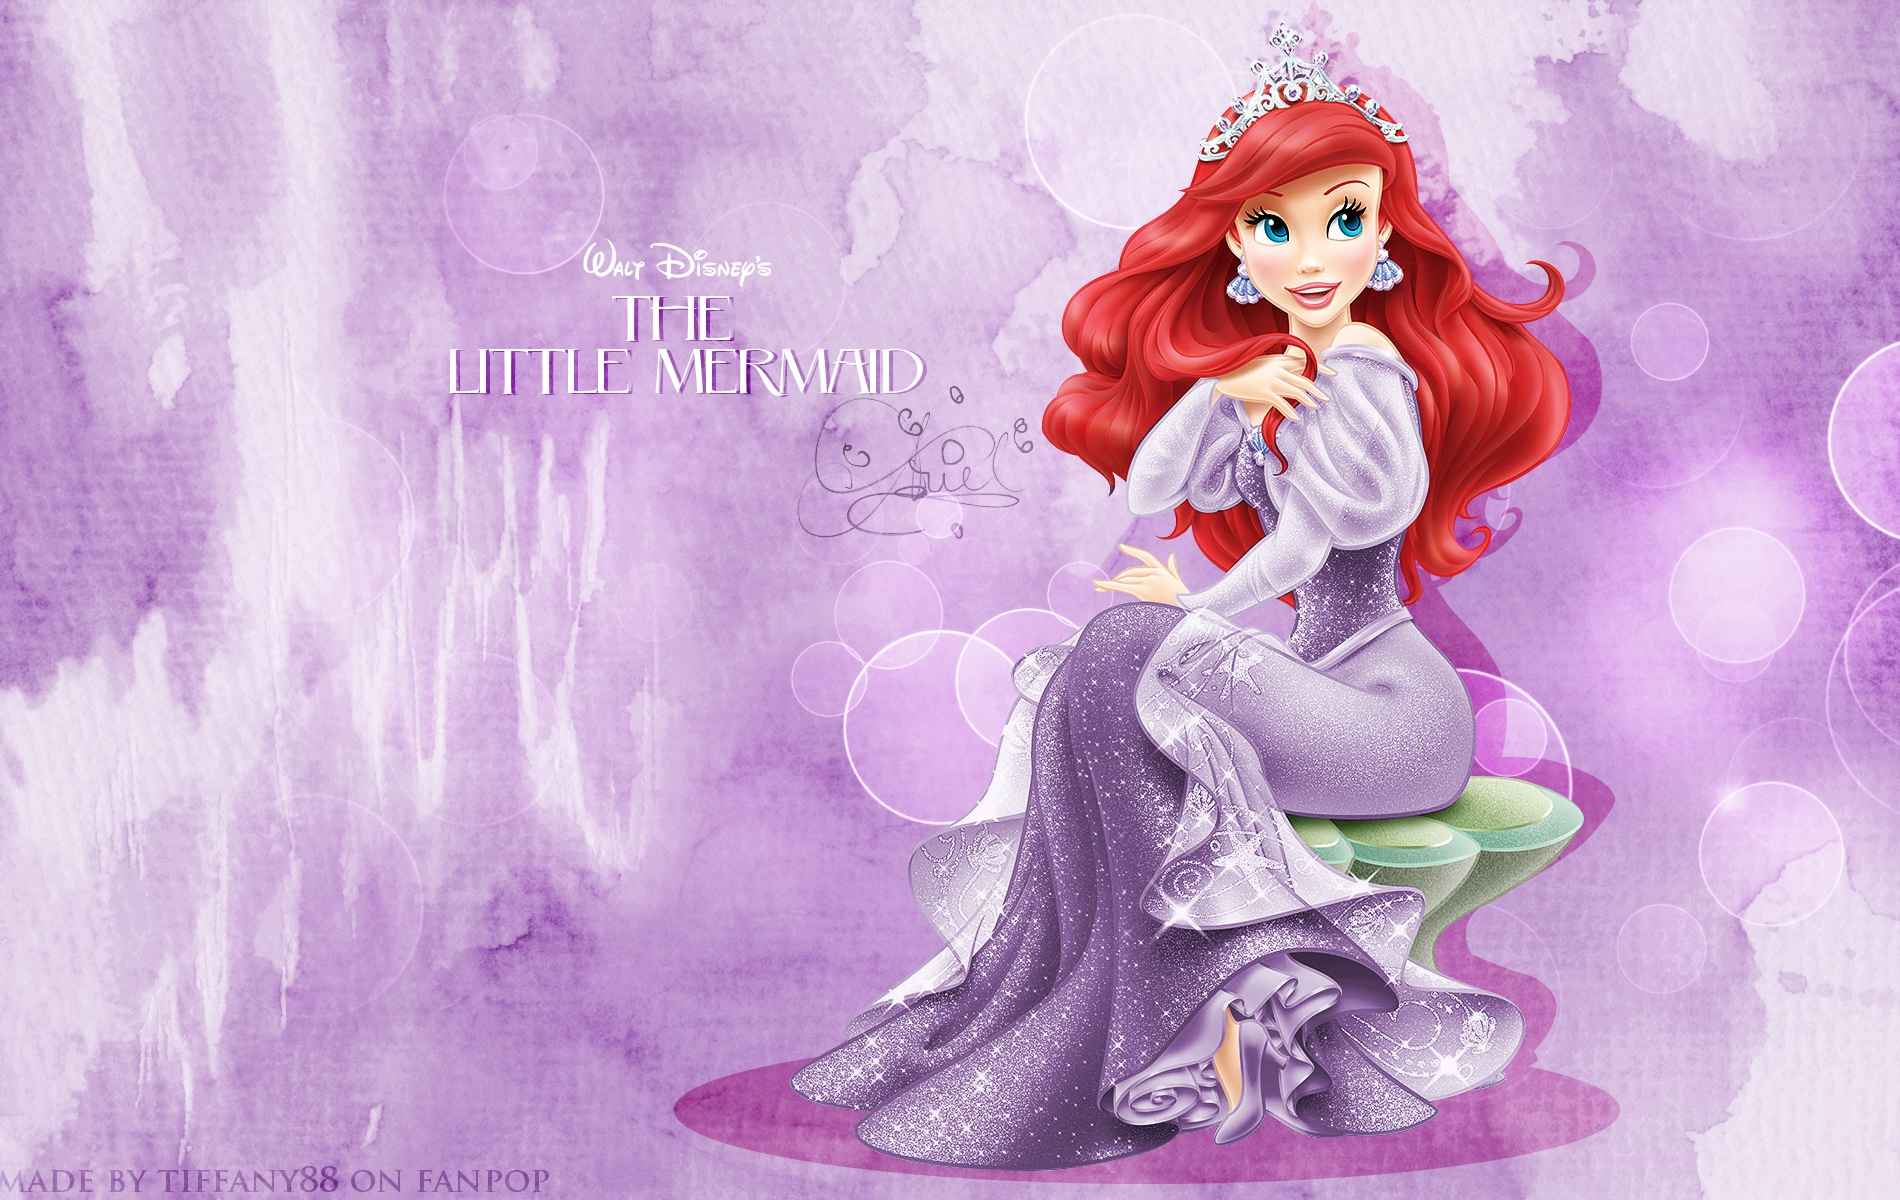 Disney Princess Images Free Download Princess Aurora Belle Ariel